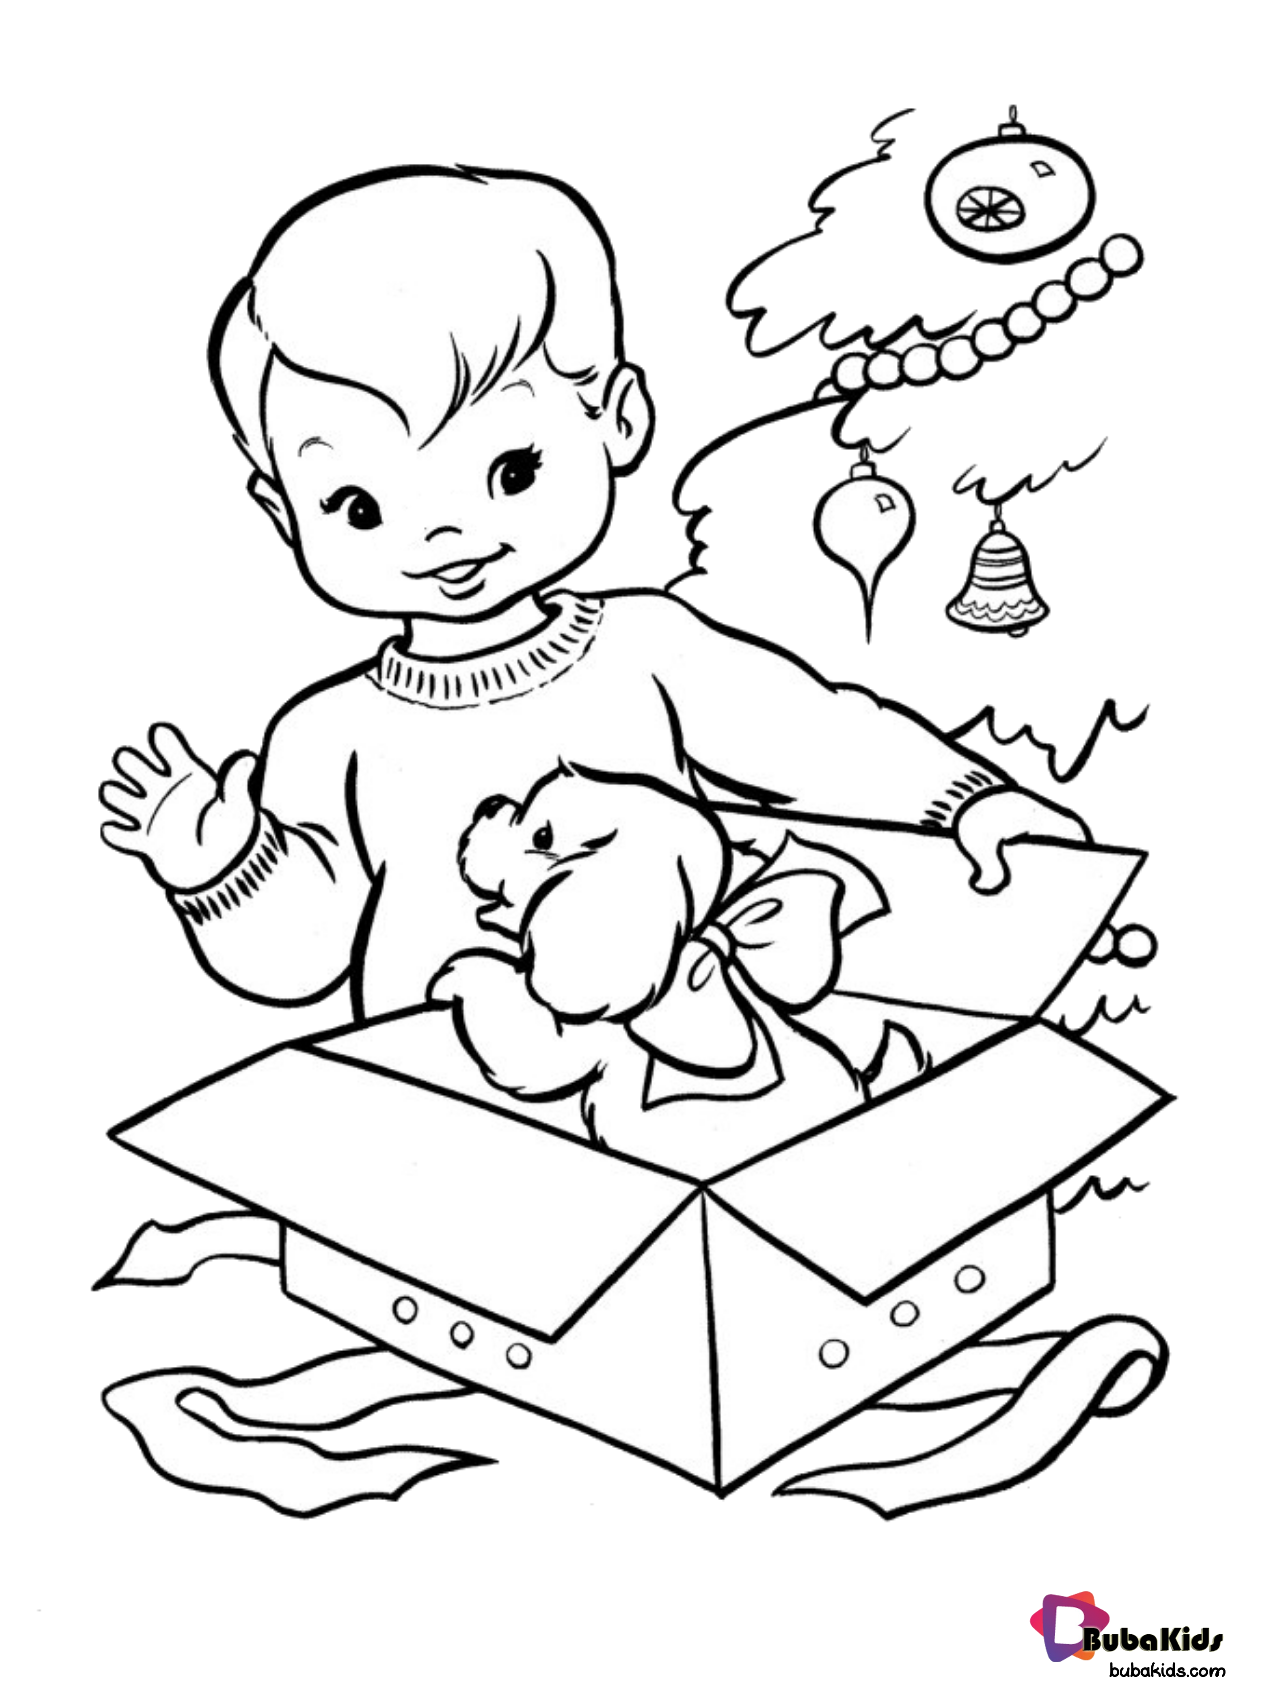 Christmas Gift Coloring Page Collection Of Cartoon Coloring Pages For Christmas Present Coloring Pages Kids Printable Coloring Pages Christmas Coloring Books